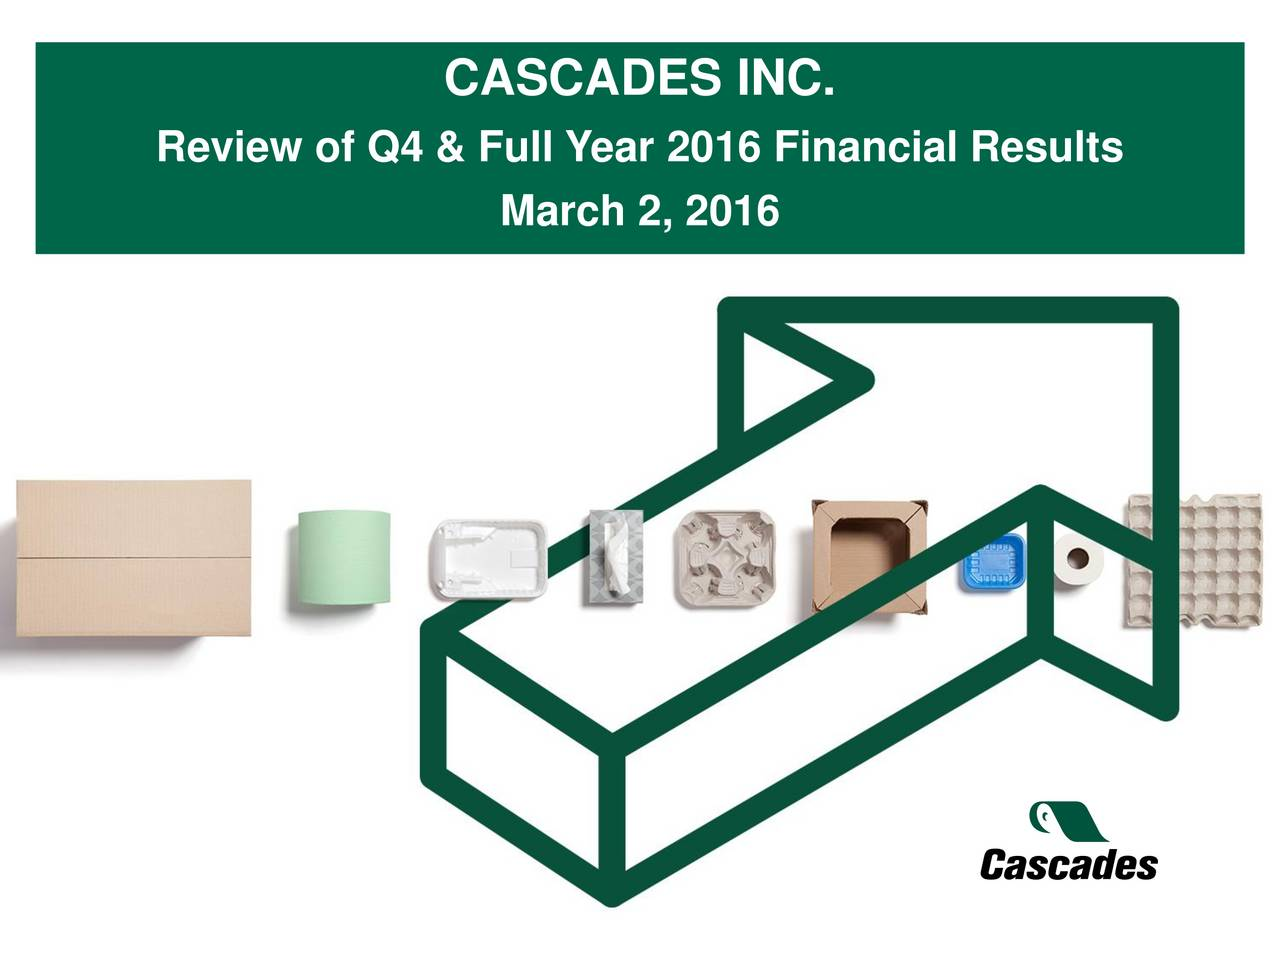 Review of Q4 & Full Year 2016 Financial Results March 2, 2016